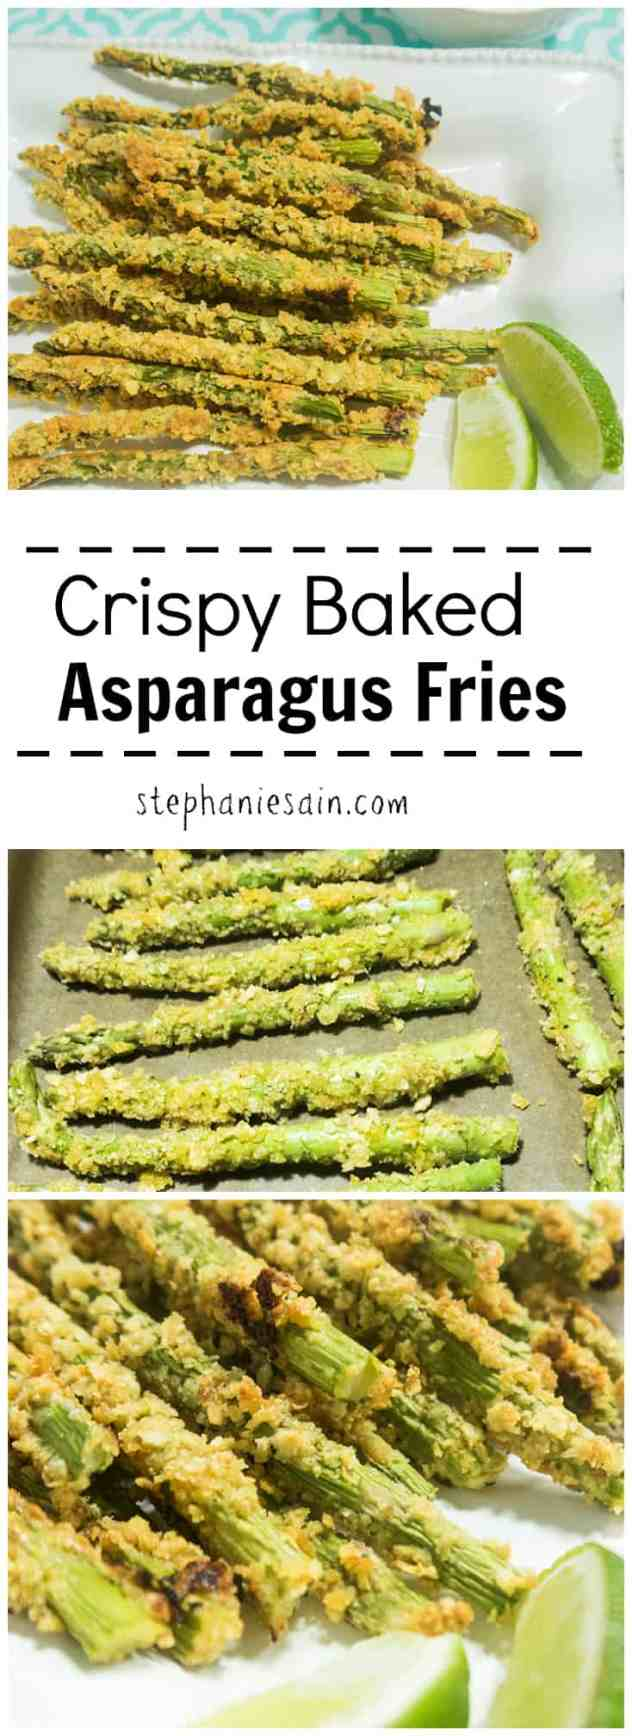 Crispy Baked Asparagus Fries are a tasty healthier version for fries. They are the perfect side with almost anything or could even be served as an appetizer. Vegetarian & Gluten Free.